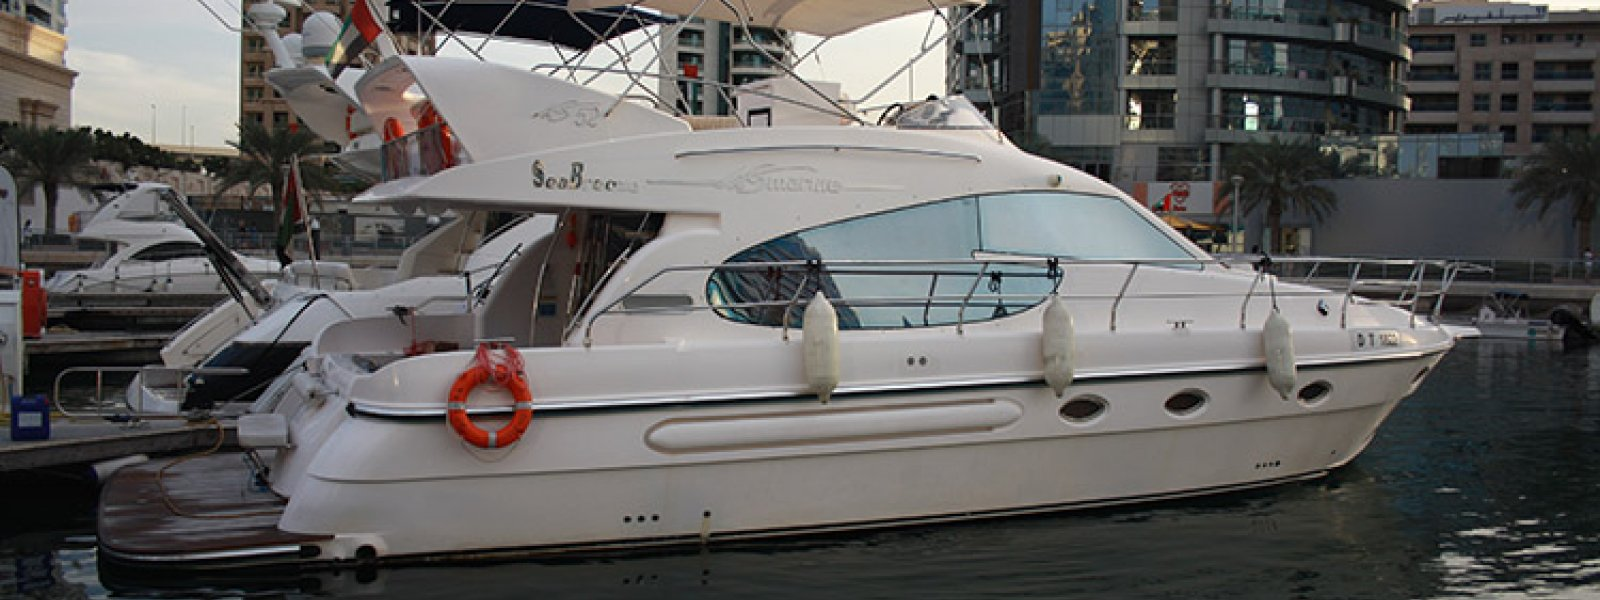 Cozmo 52 Feet Sea Breeze Yacht berthed near dubai Marina.